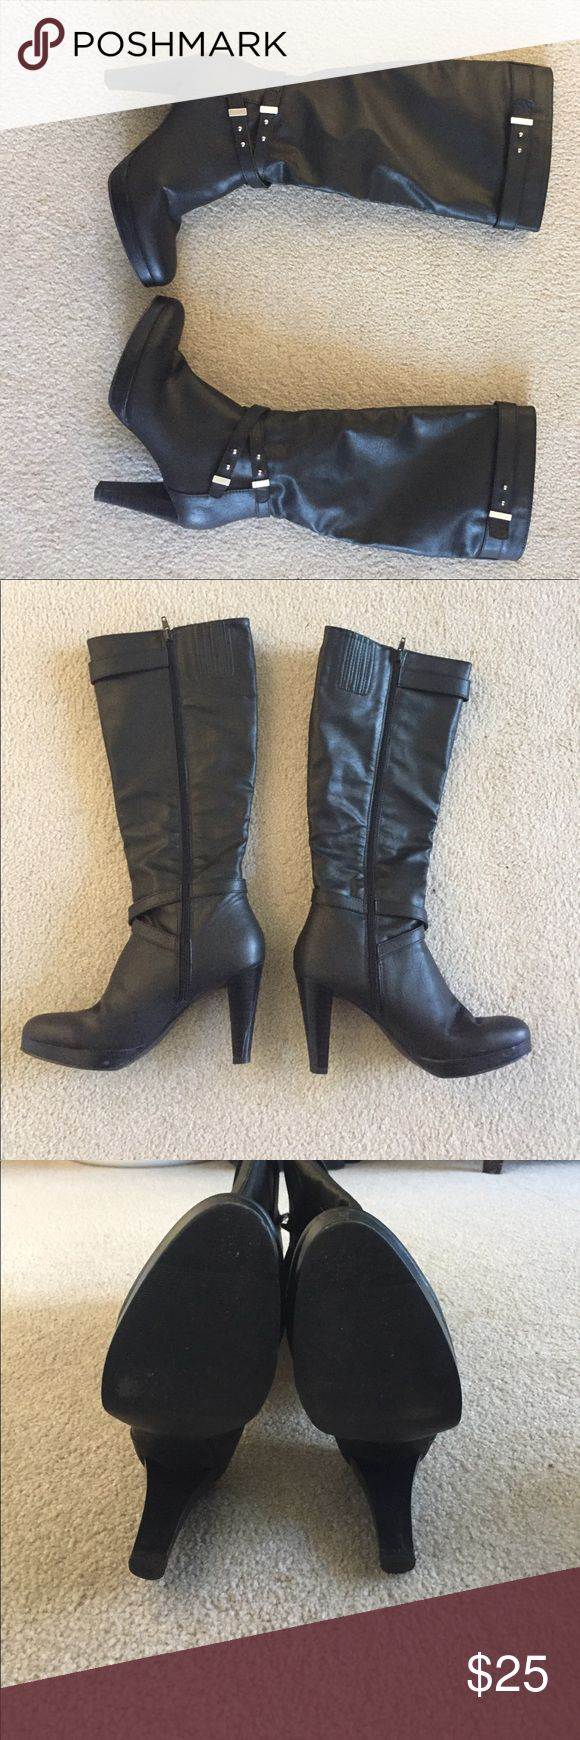 "Knee high boots - Sbicca, man made materials 7 1/2, very gently worn, 3 1/2"" heel, super comfy Sbicca Shoes Heeled Boots"